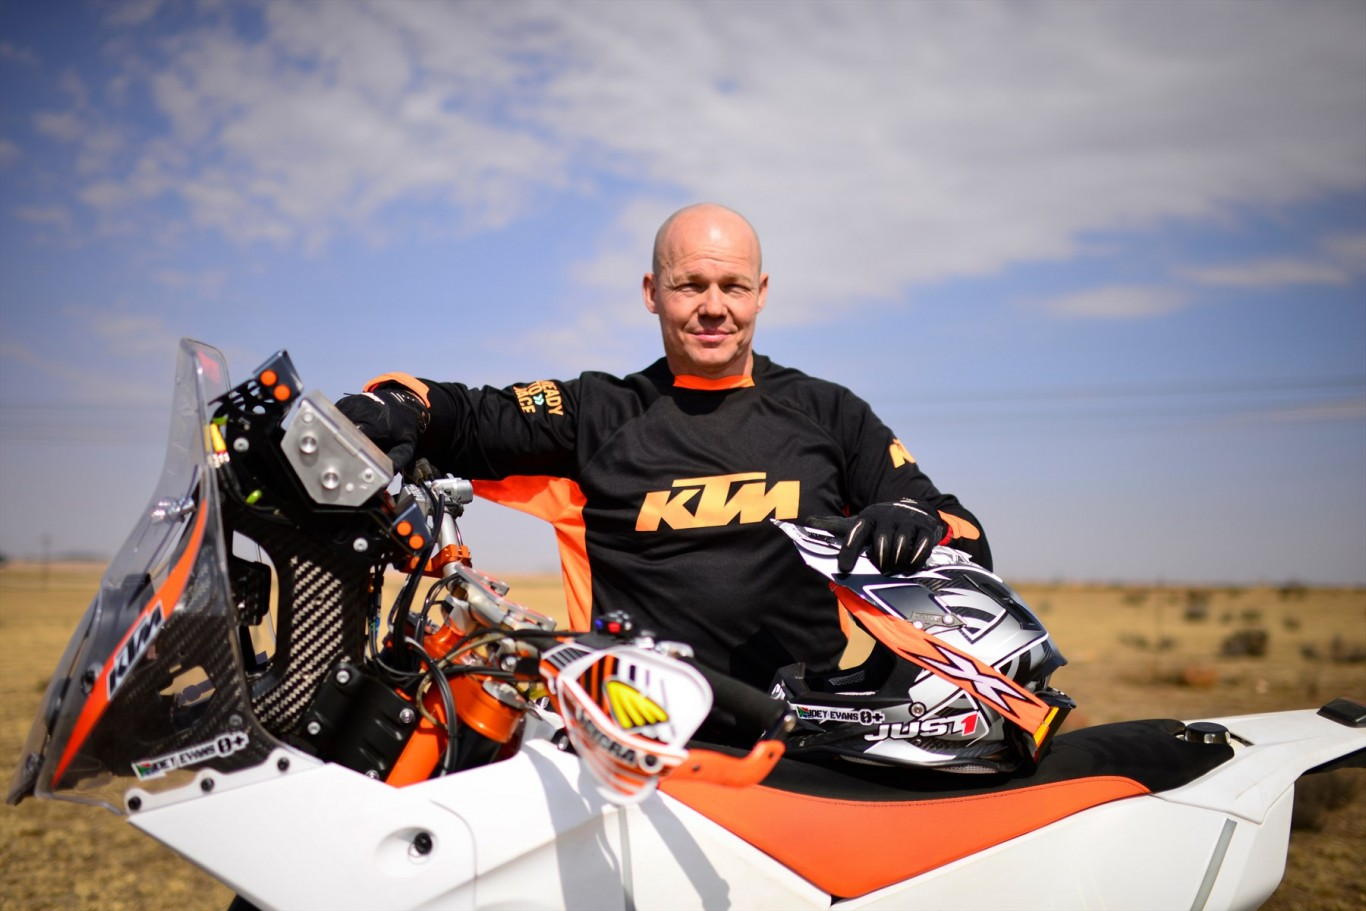 From Para to Dakar – The Joey Evans story